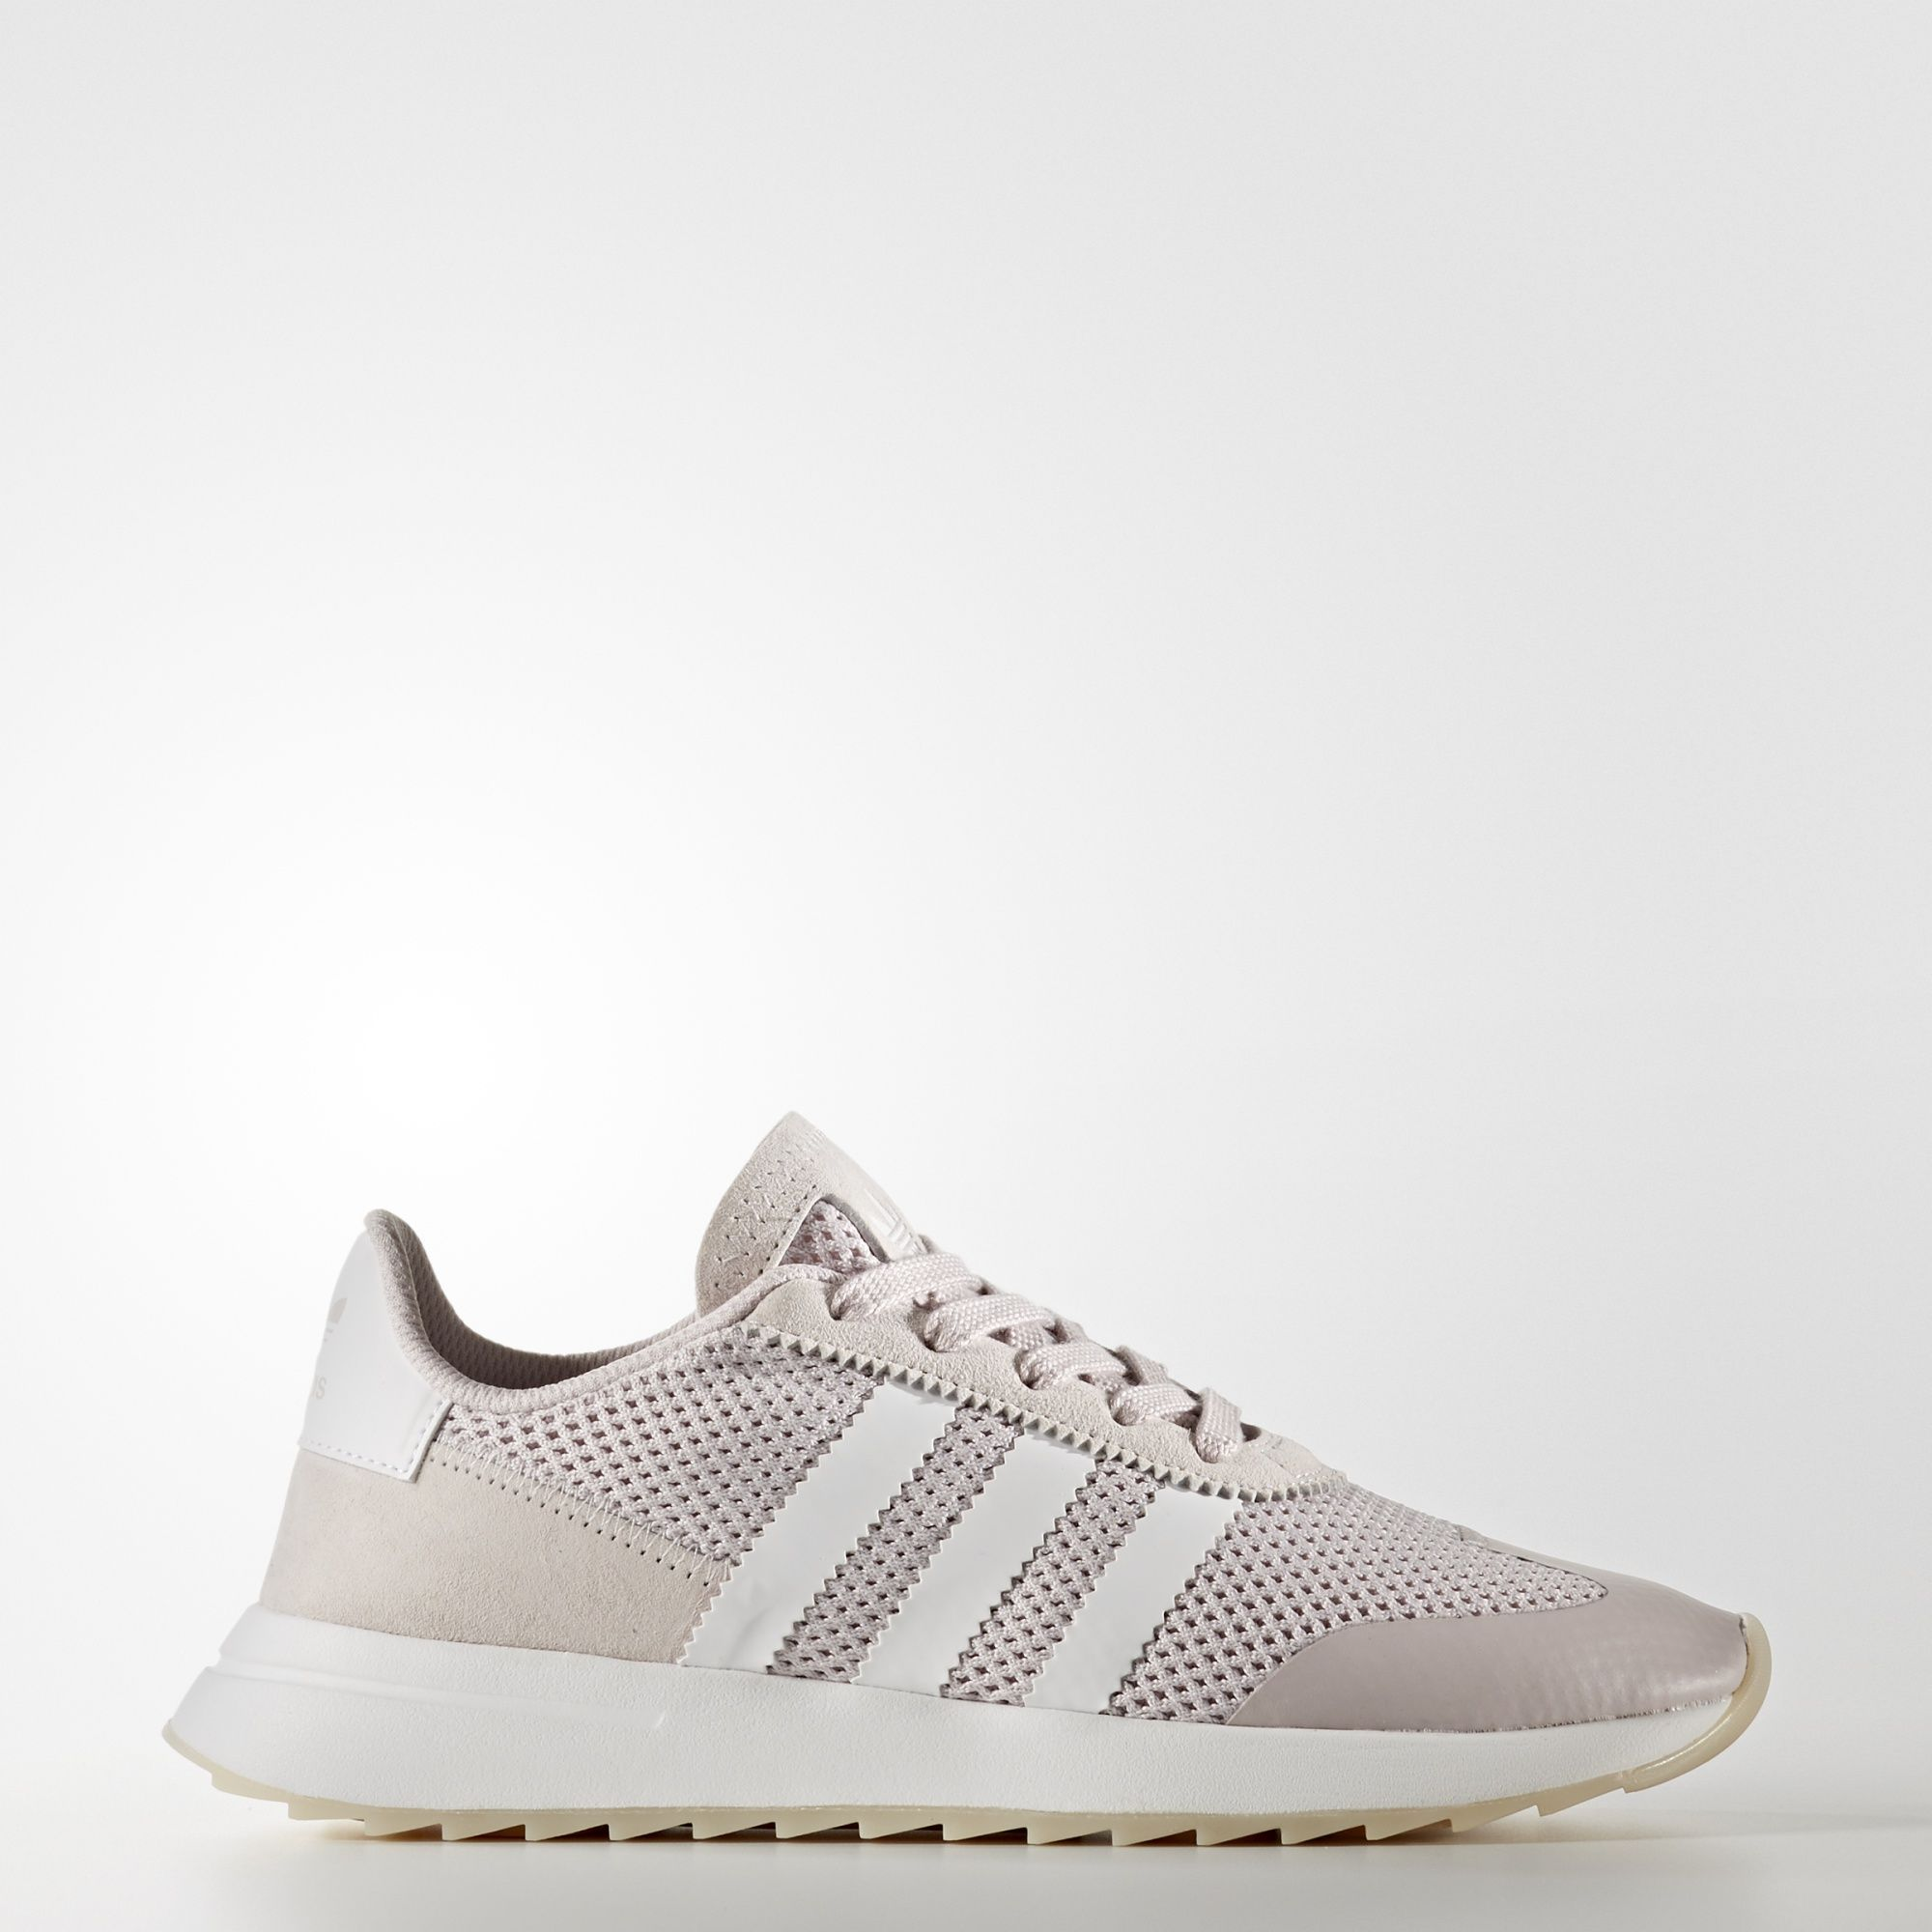 Originals Shoes | adidas Canada